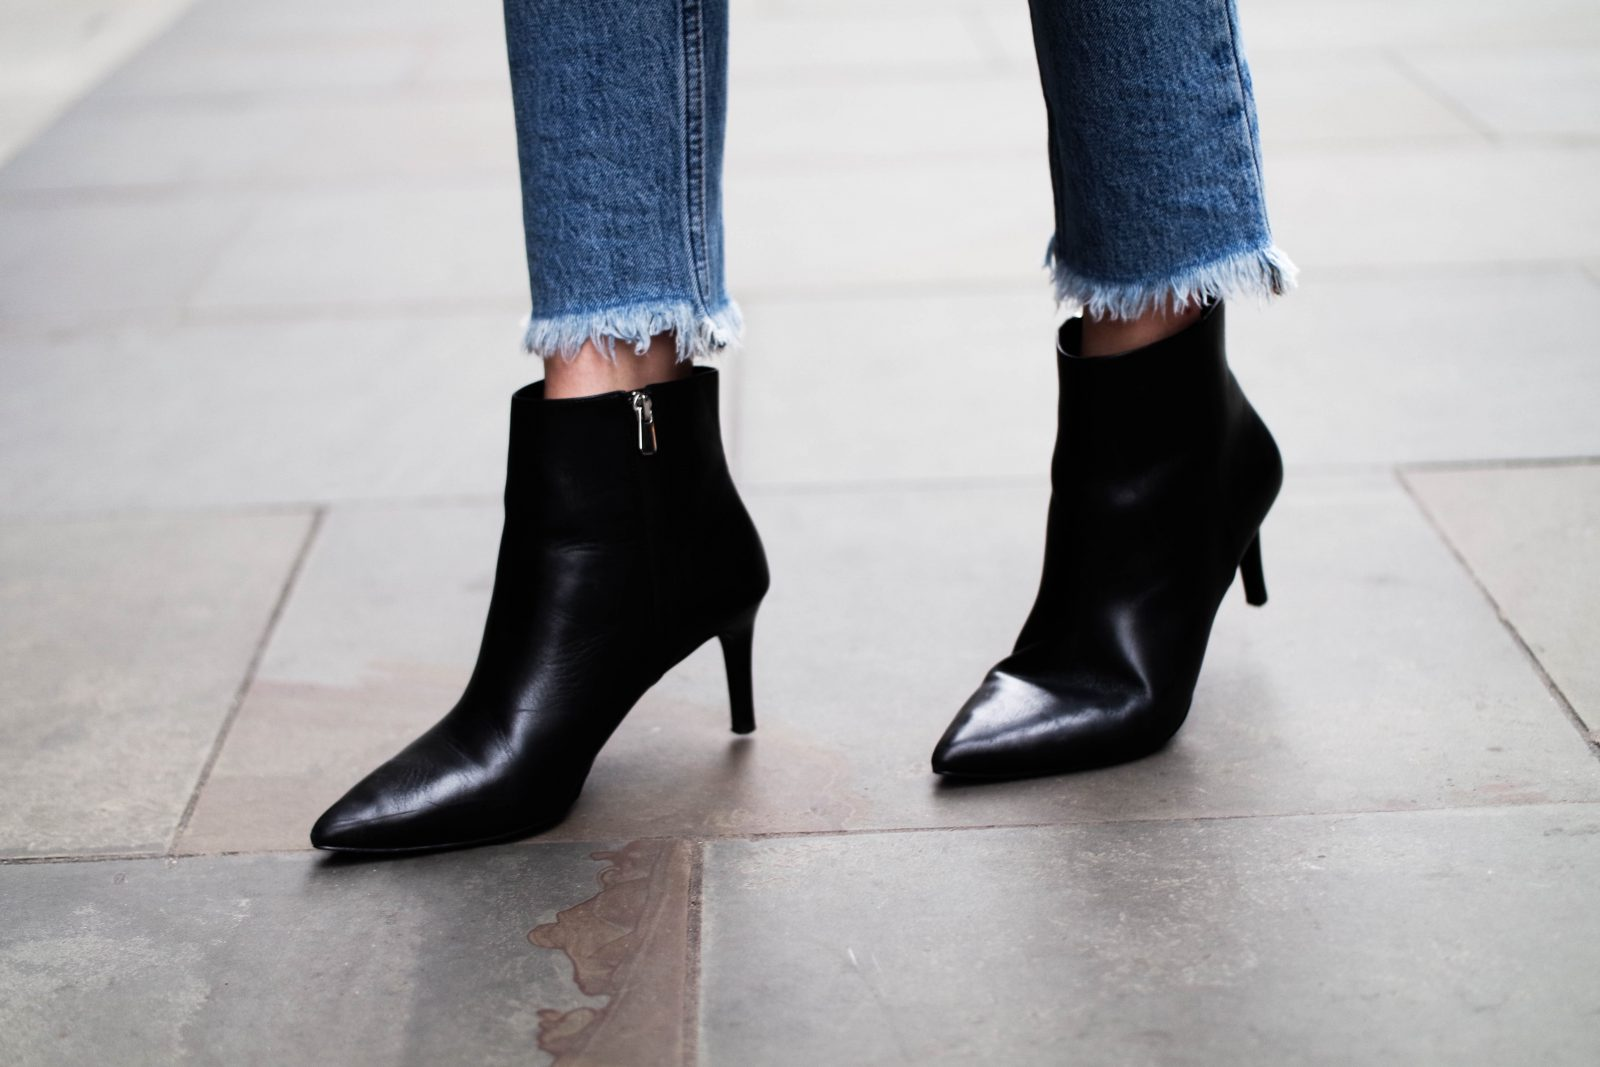 LFW Day 4 Comfy & Casual - Stories Boots